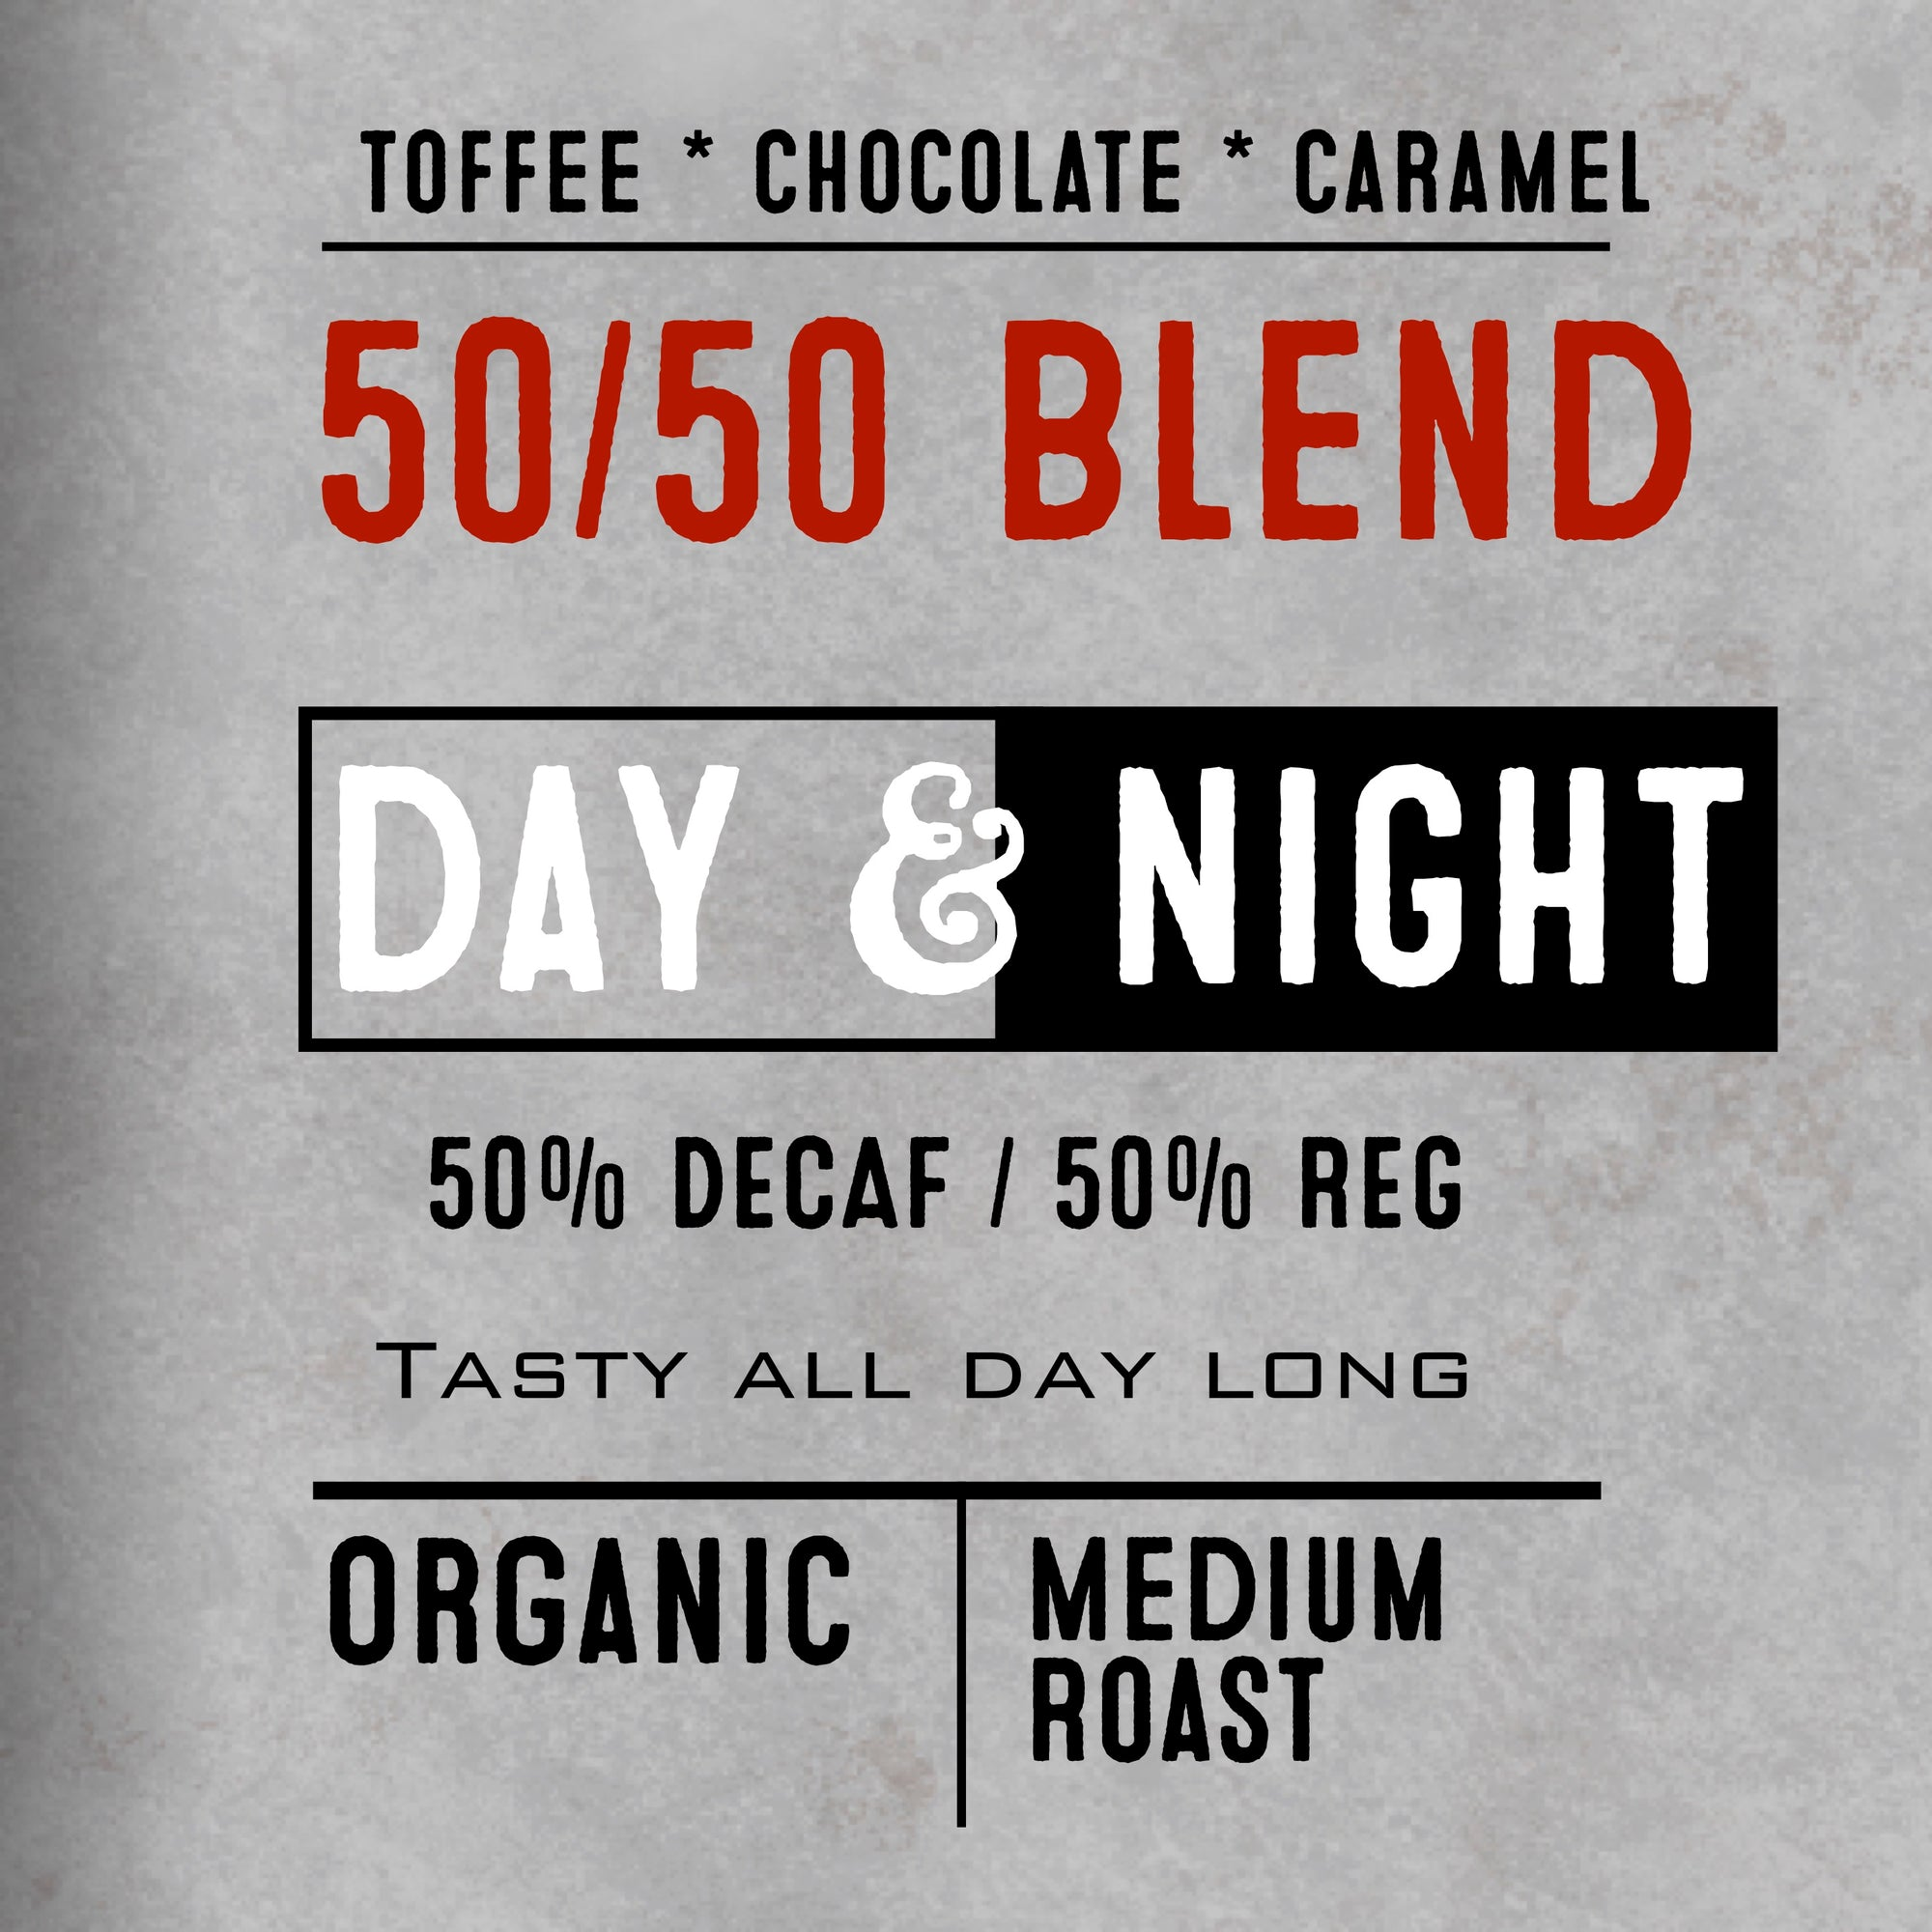 50/50 Blend - 50% Decaf & 50% Caffeinated